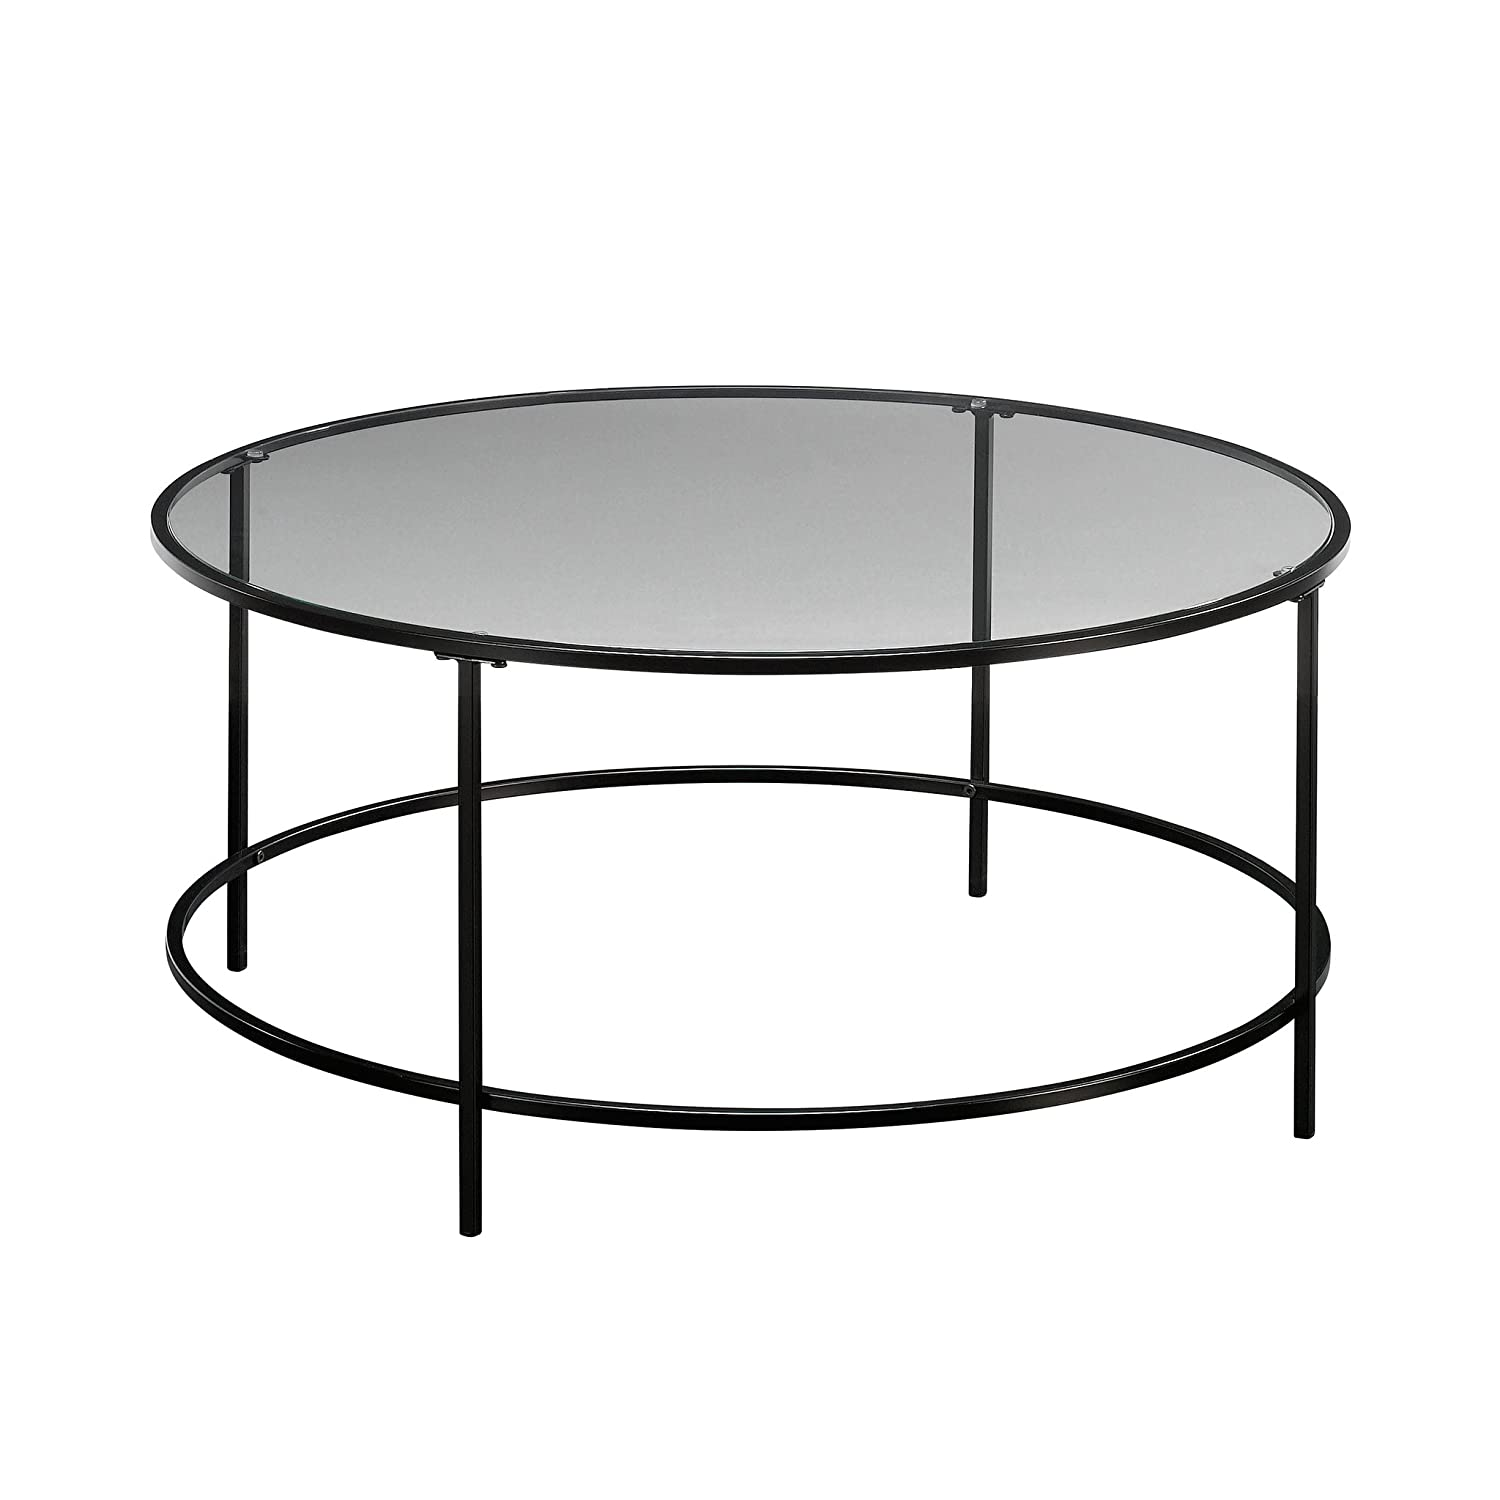 Surprising Sauder Soft Modern Round Coffee Table Black Clear Glass Home Interior And Landscaping Mentranervesignezvosmurscom